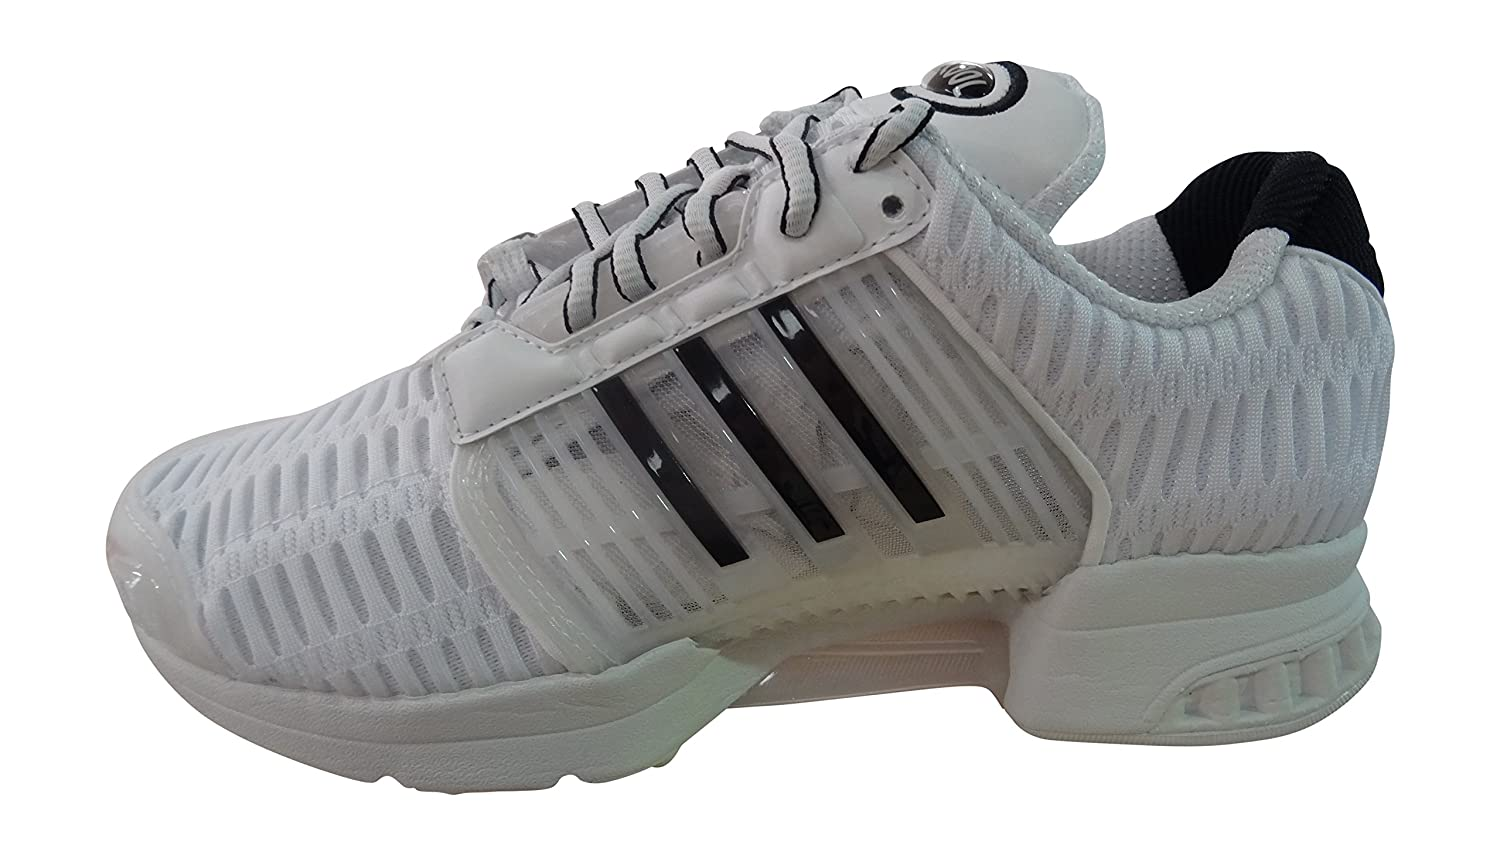 Adidas Herren Clima Cool 1 927 Turnschuhe  | Charmantes Design